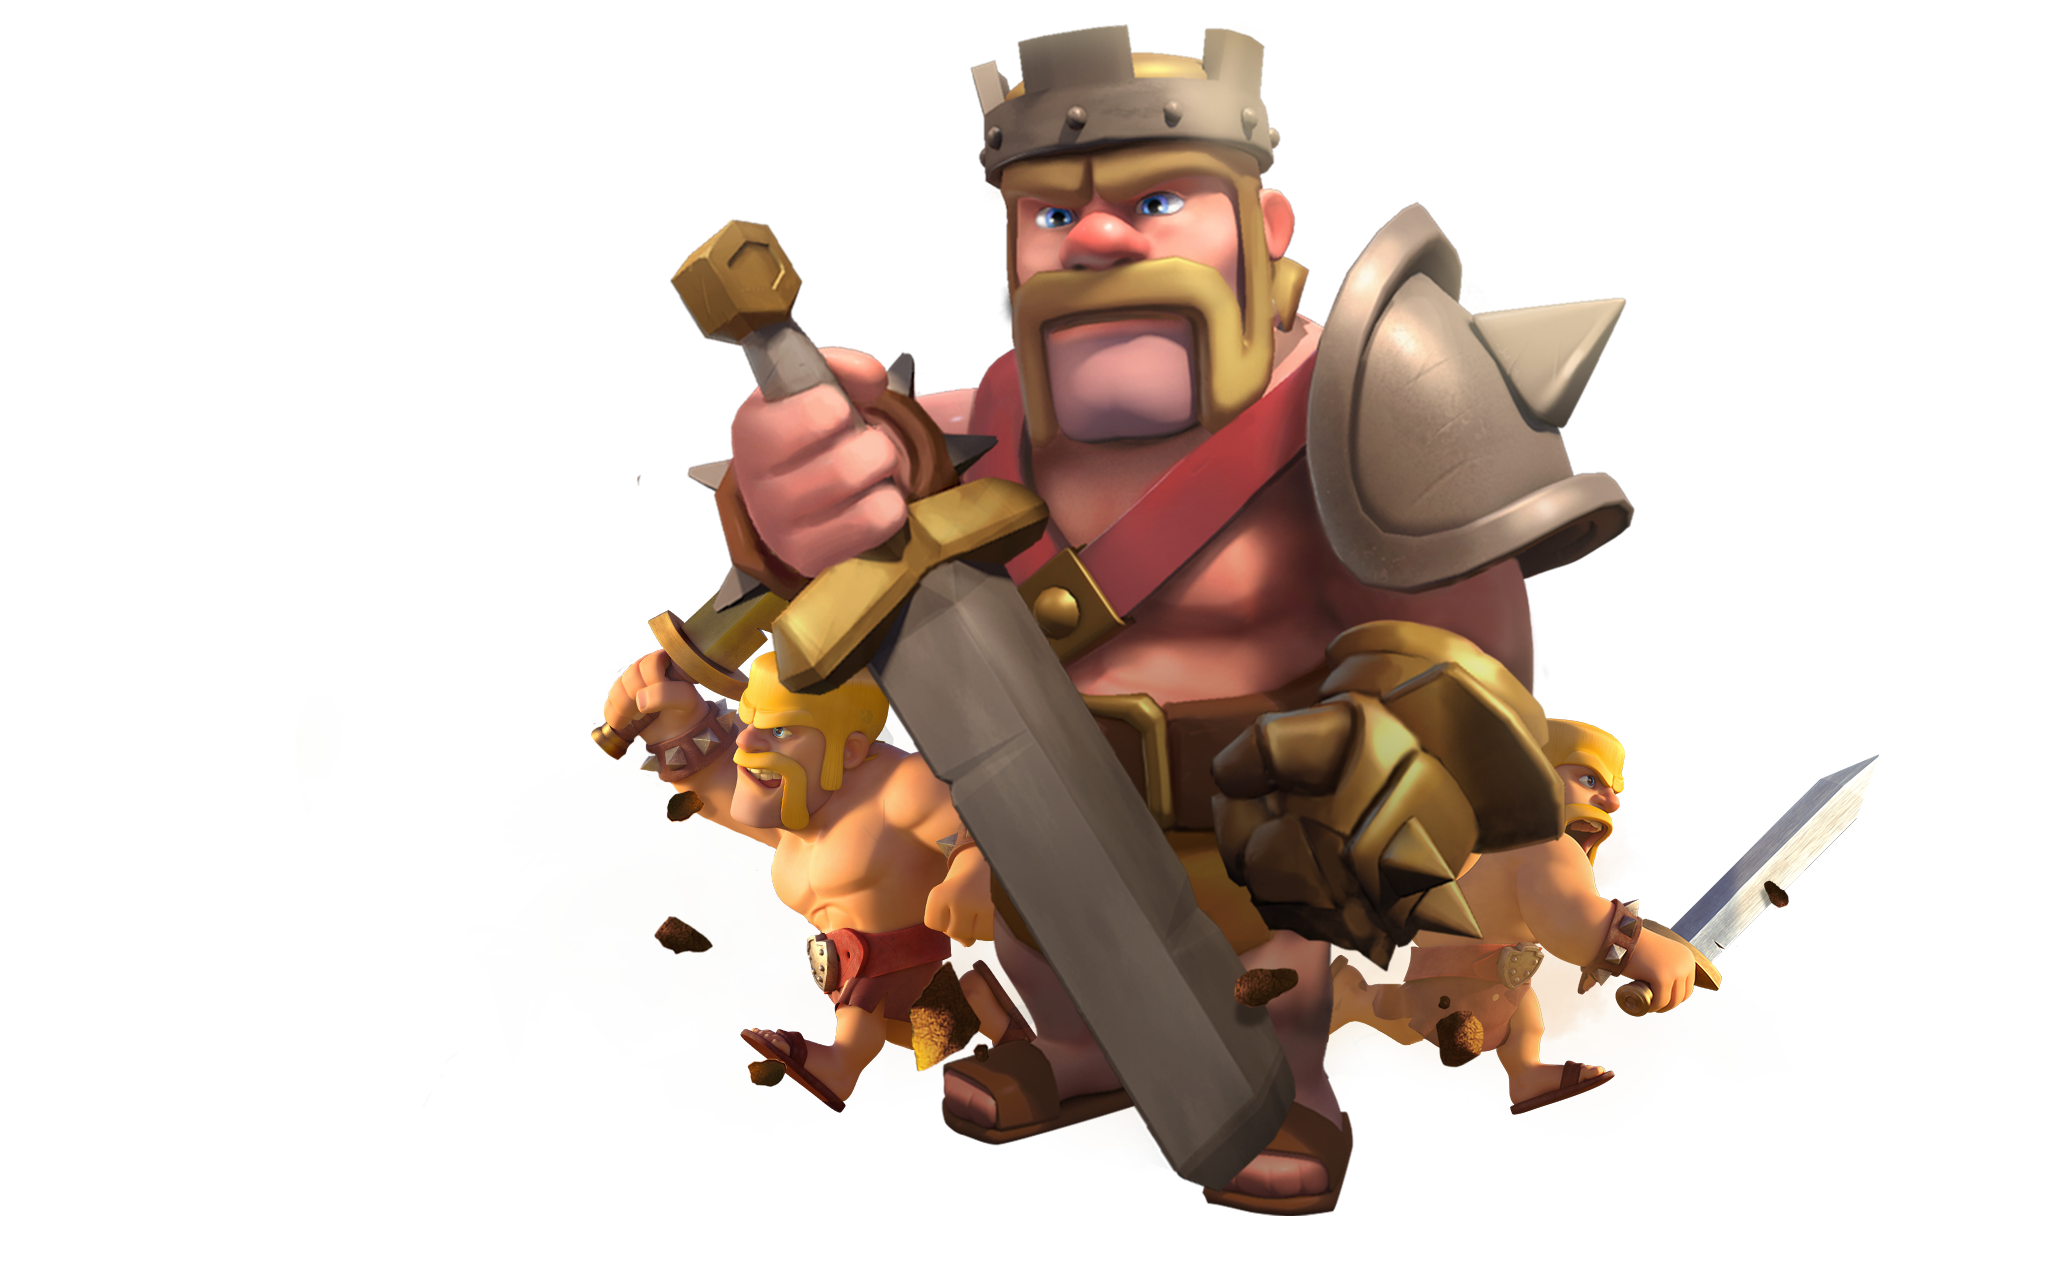 Barbarian Clash Of Clans Hd Hd Games 4k Wallpapers: Clash Of Clans Barbarian King